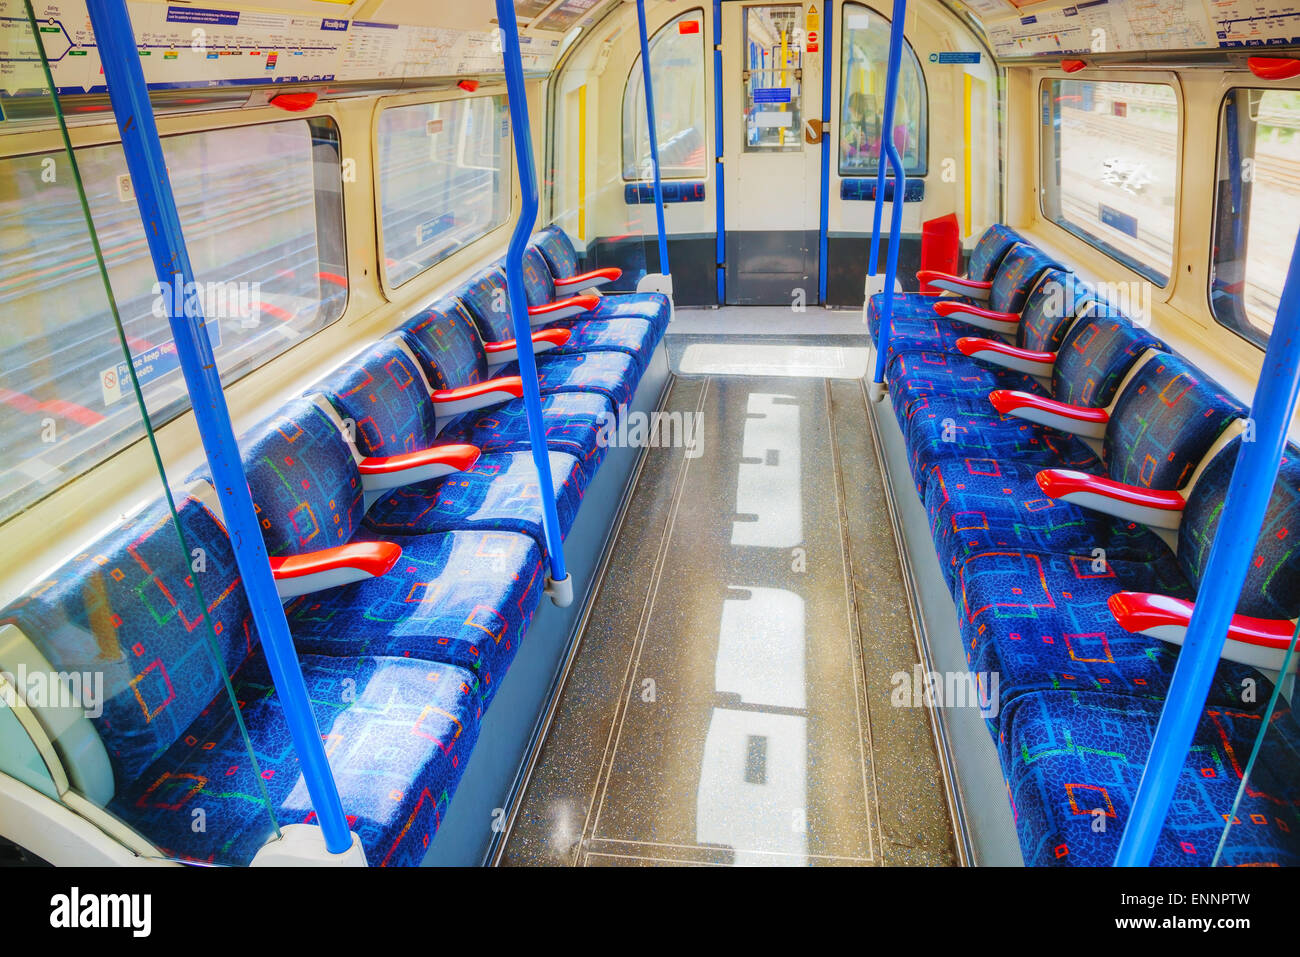 LONDON - APRIL 15: Interior of the underground train car on April 15, 2015 in London, UK. The system serves 270 Stock Photo